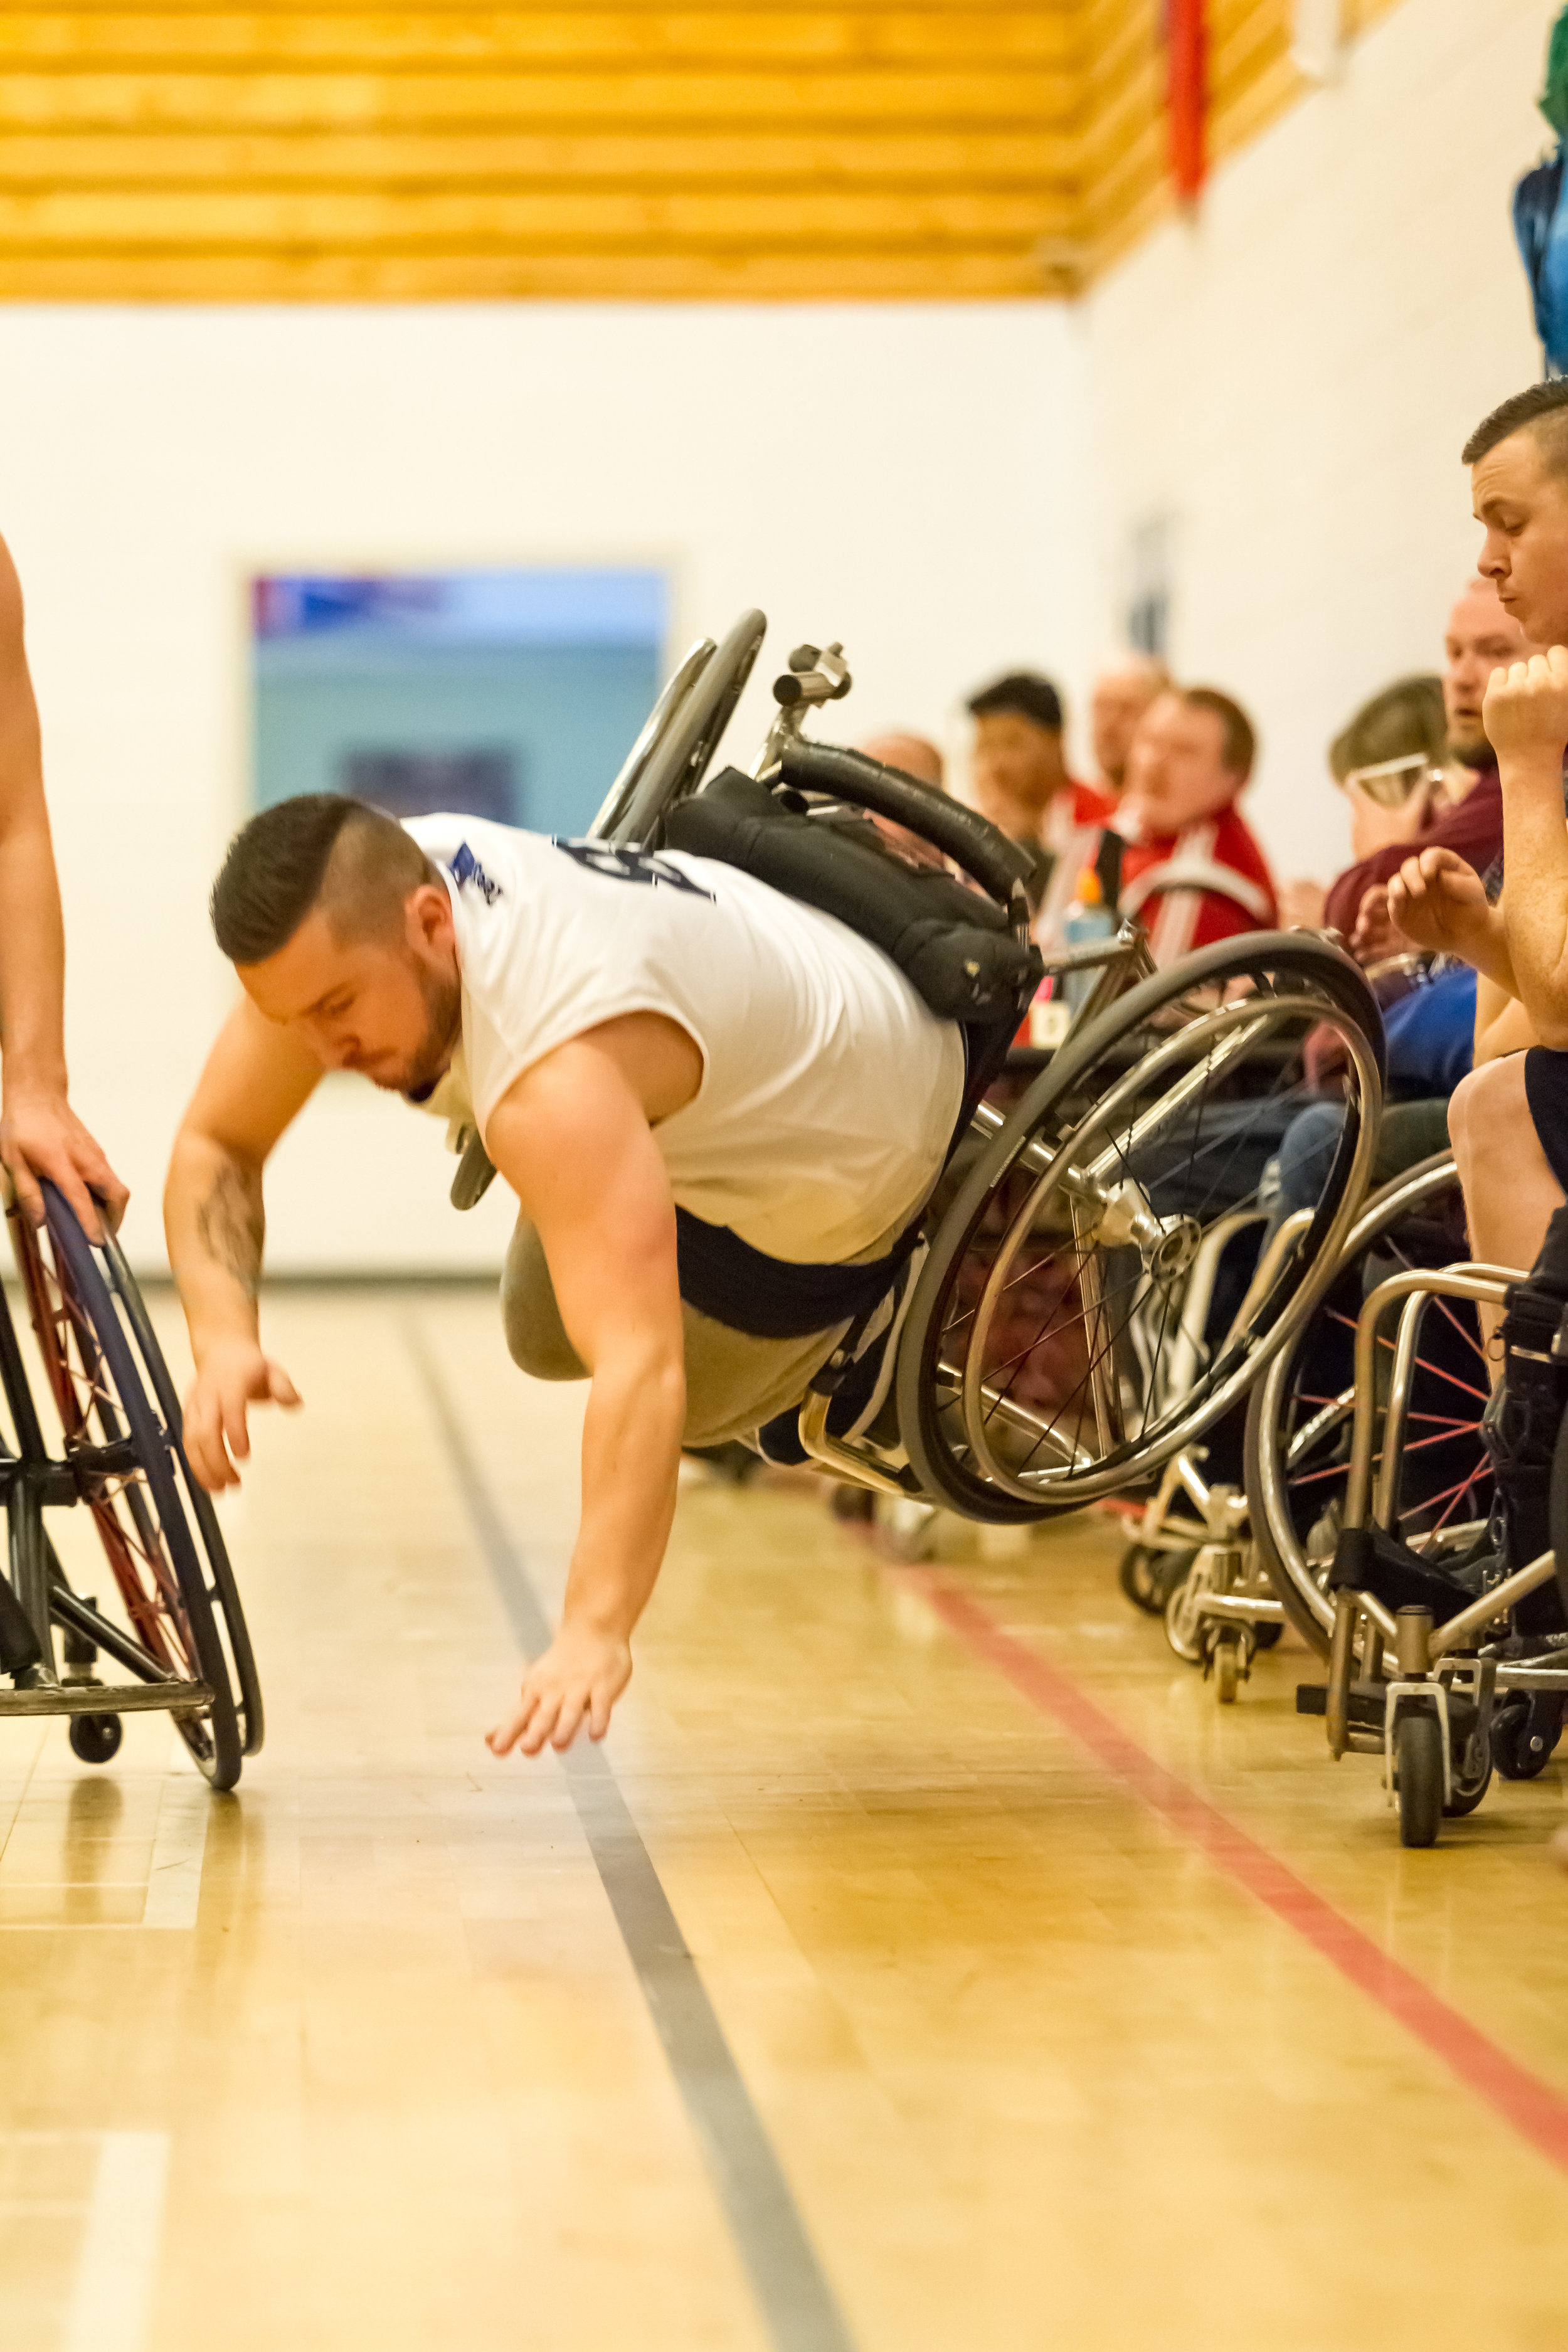 Wheelchair basketball is quite a ruthless sport